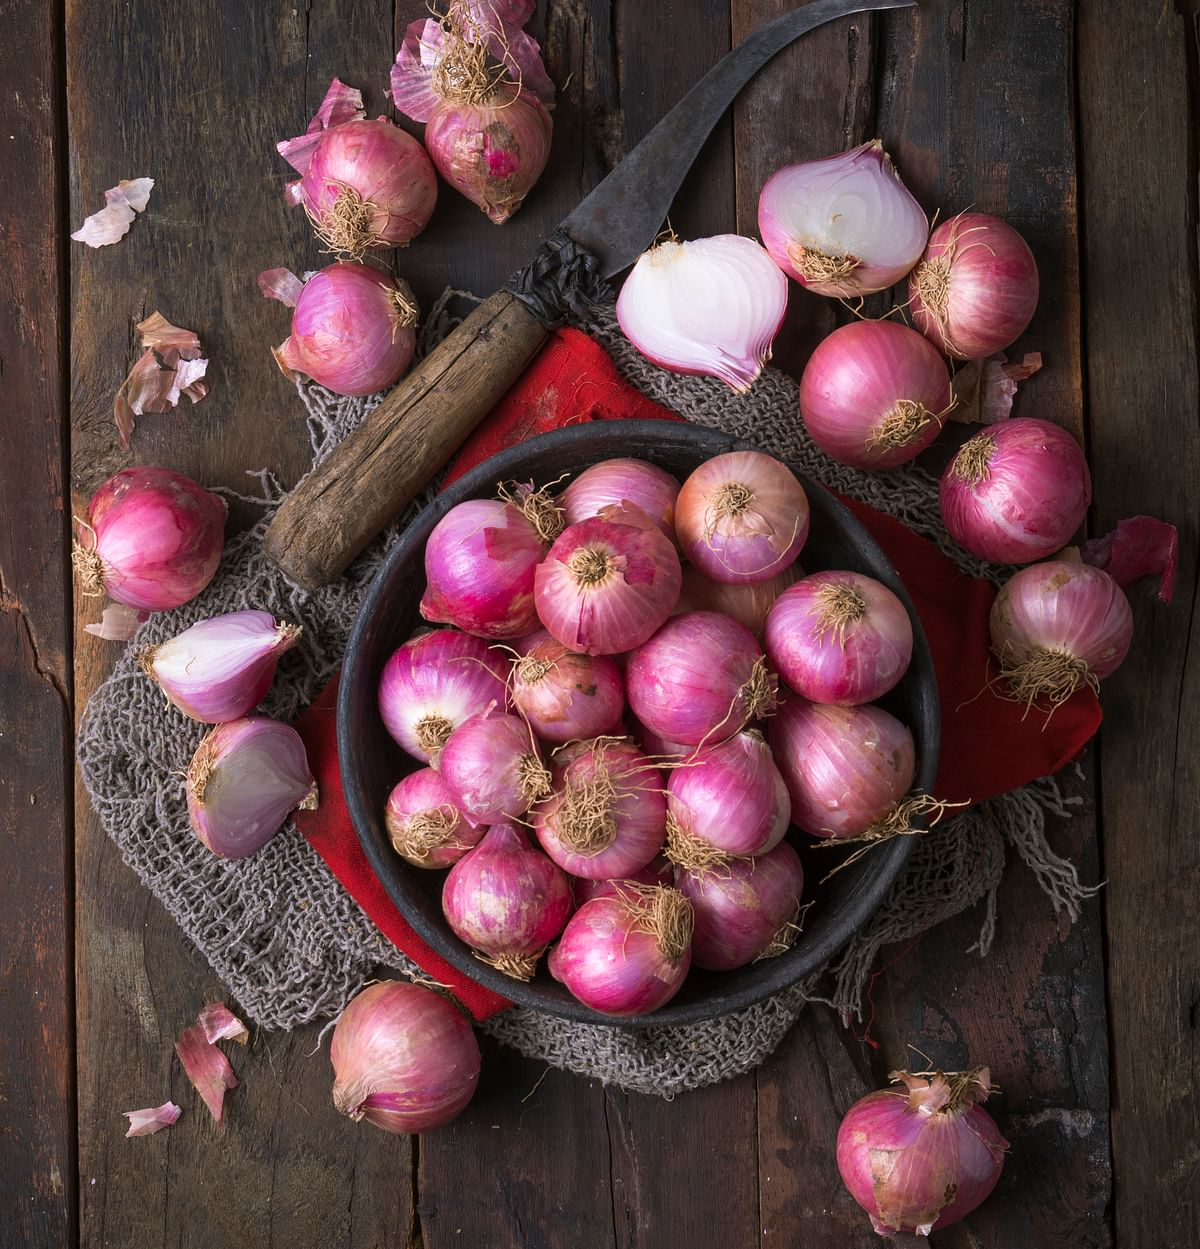 Onions increase the testosterone levels in the body.